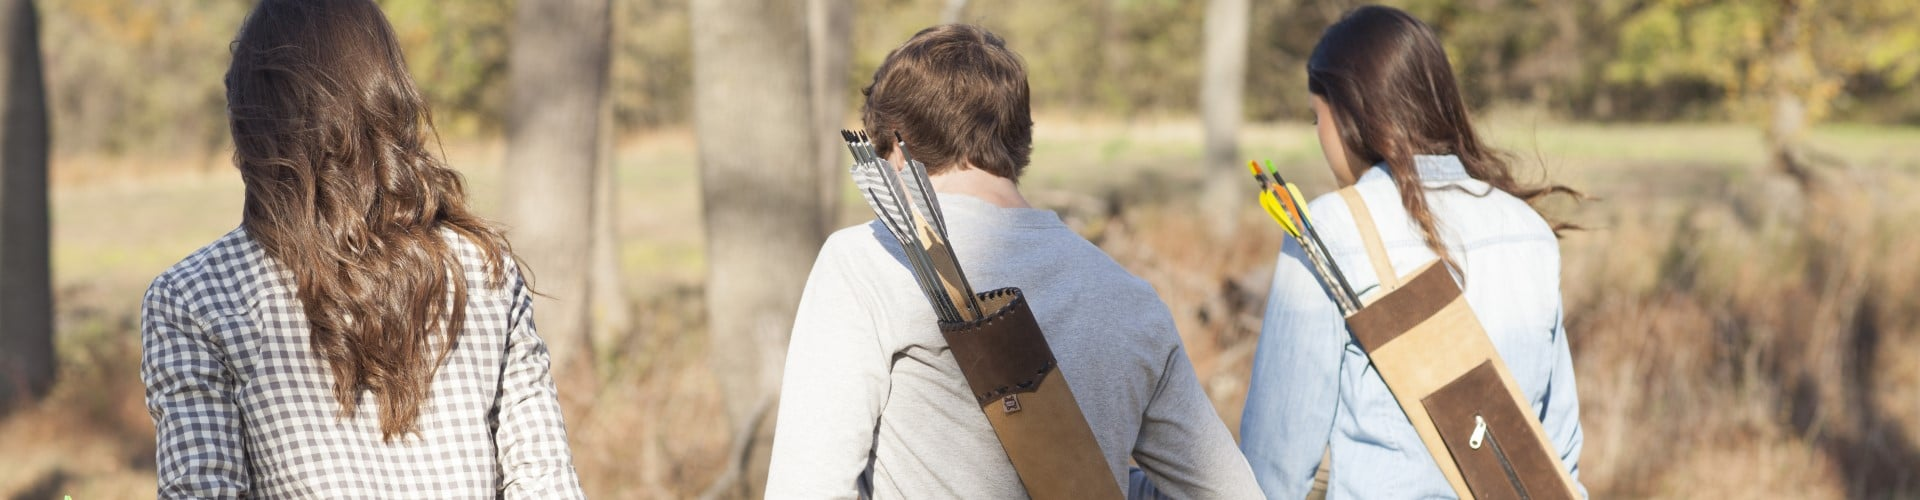 Best Bow Quivers Reviewed in Detail